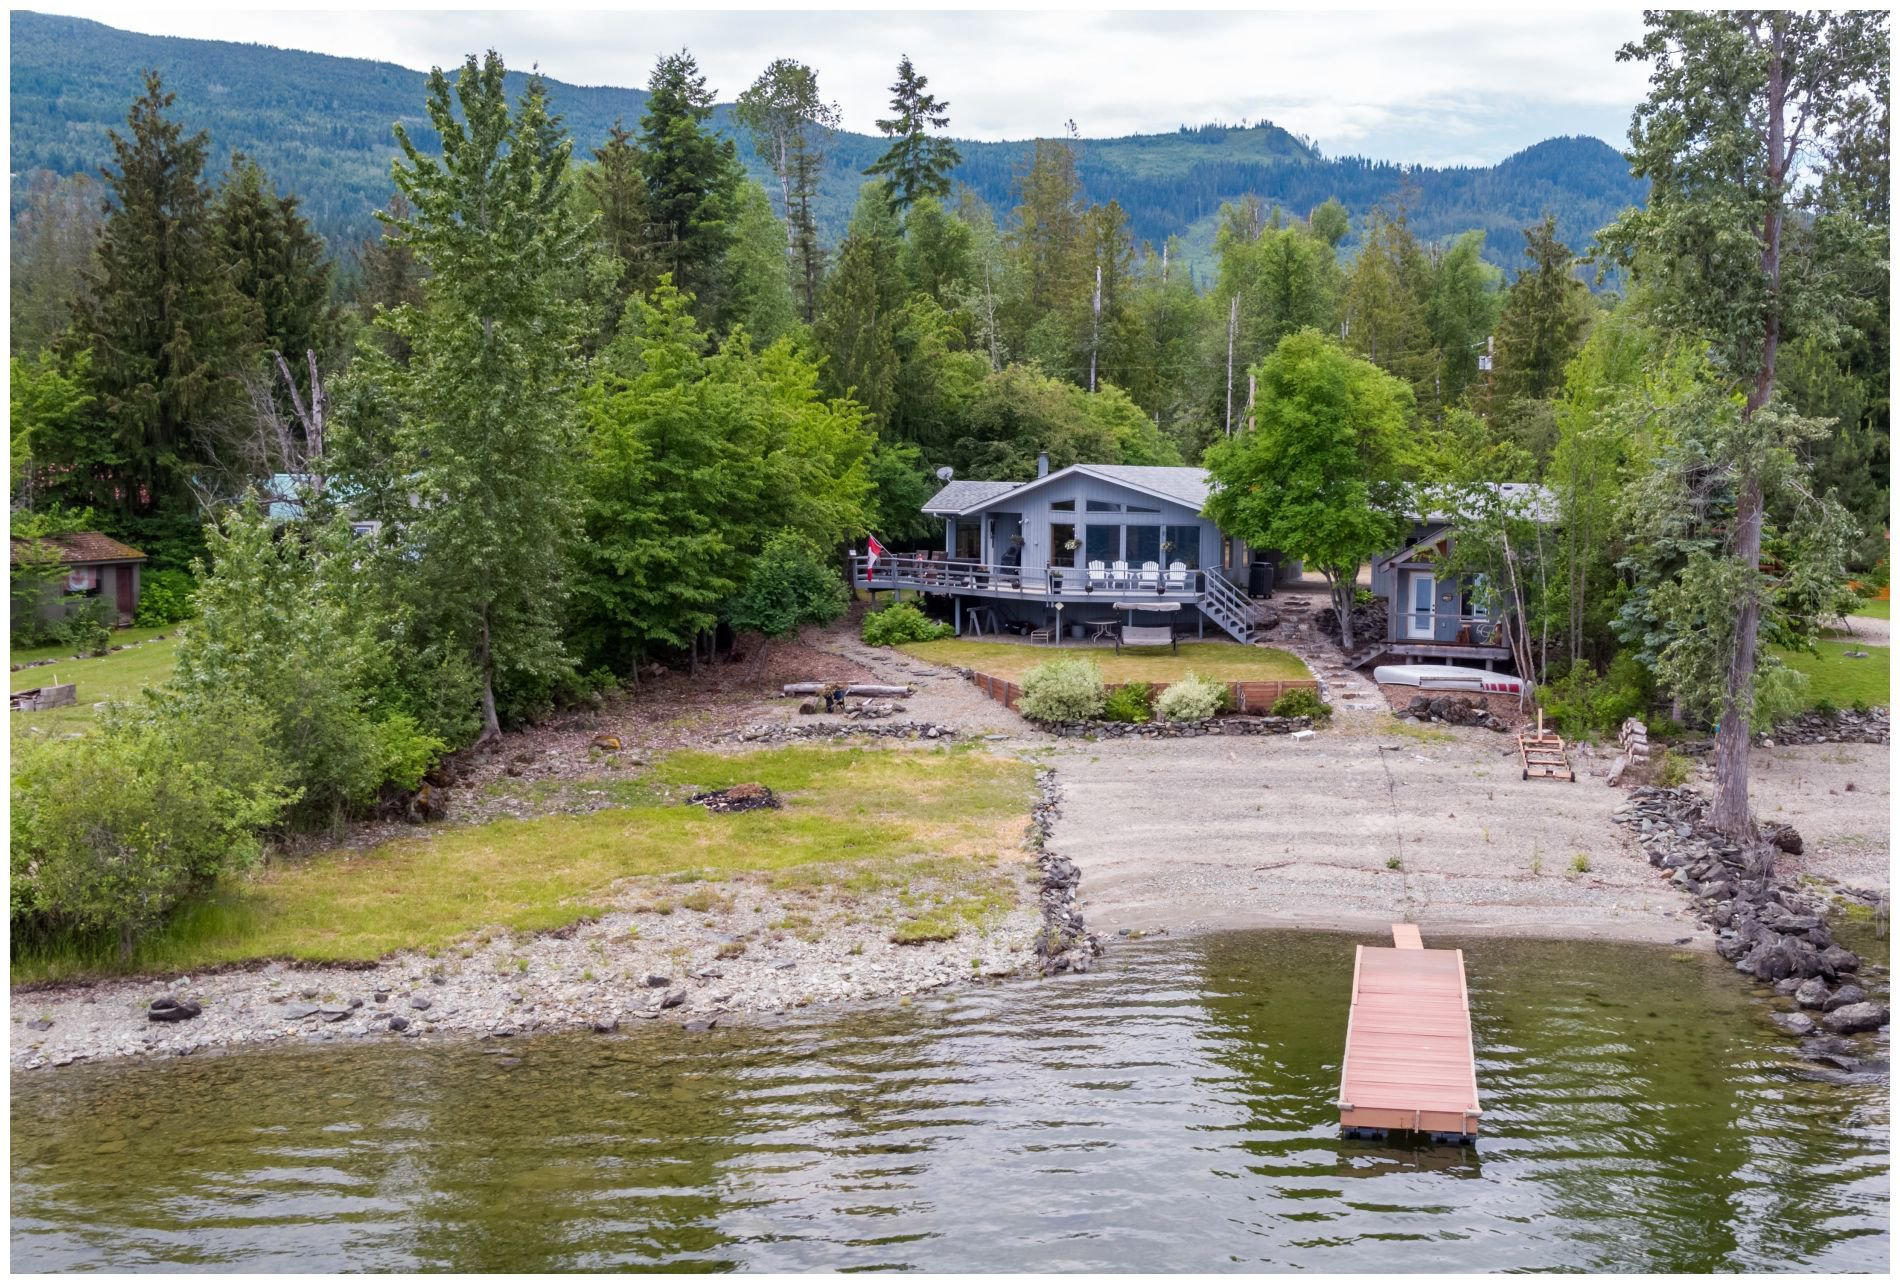 Main Photo: 4867 Parker Road: Eagle Bay House for sale (Shuswap Lake)  : MLS®# 10186336